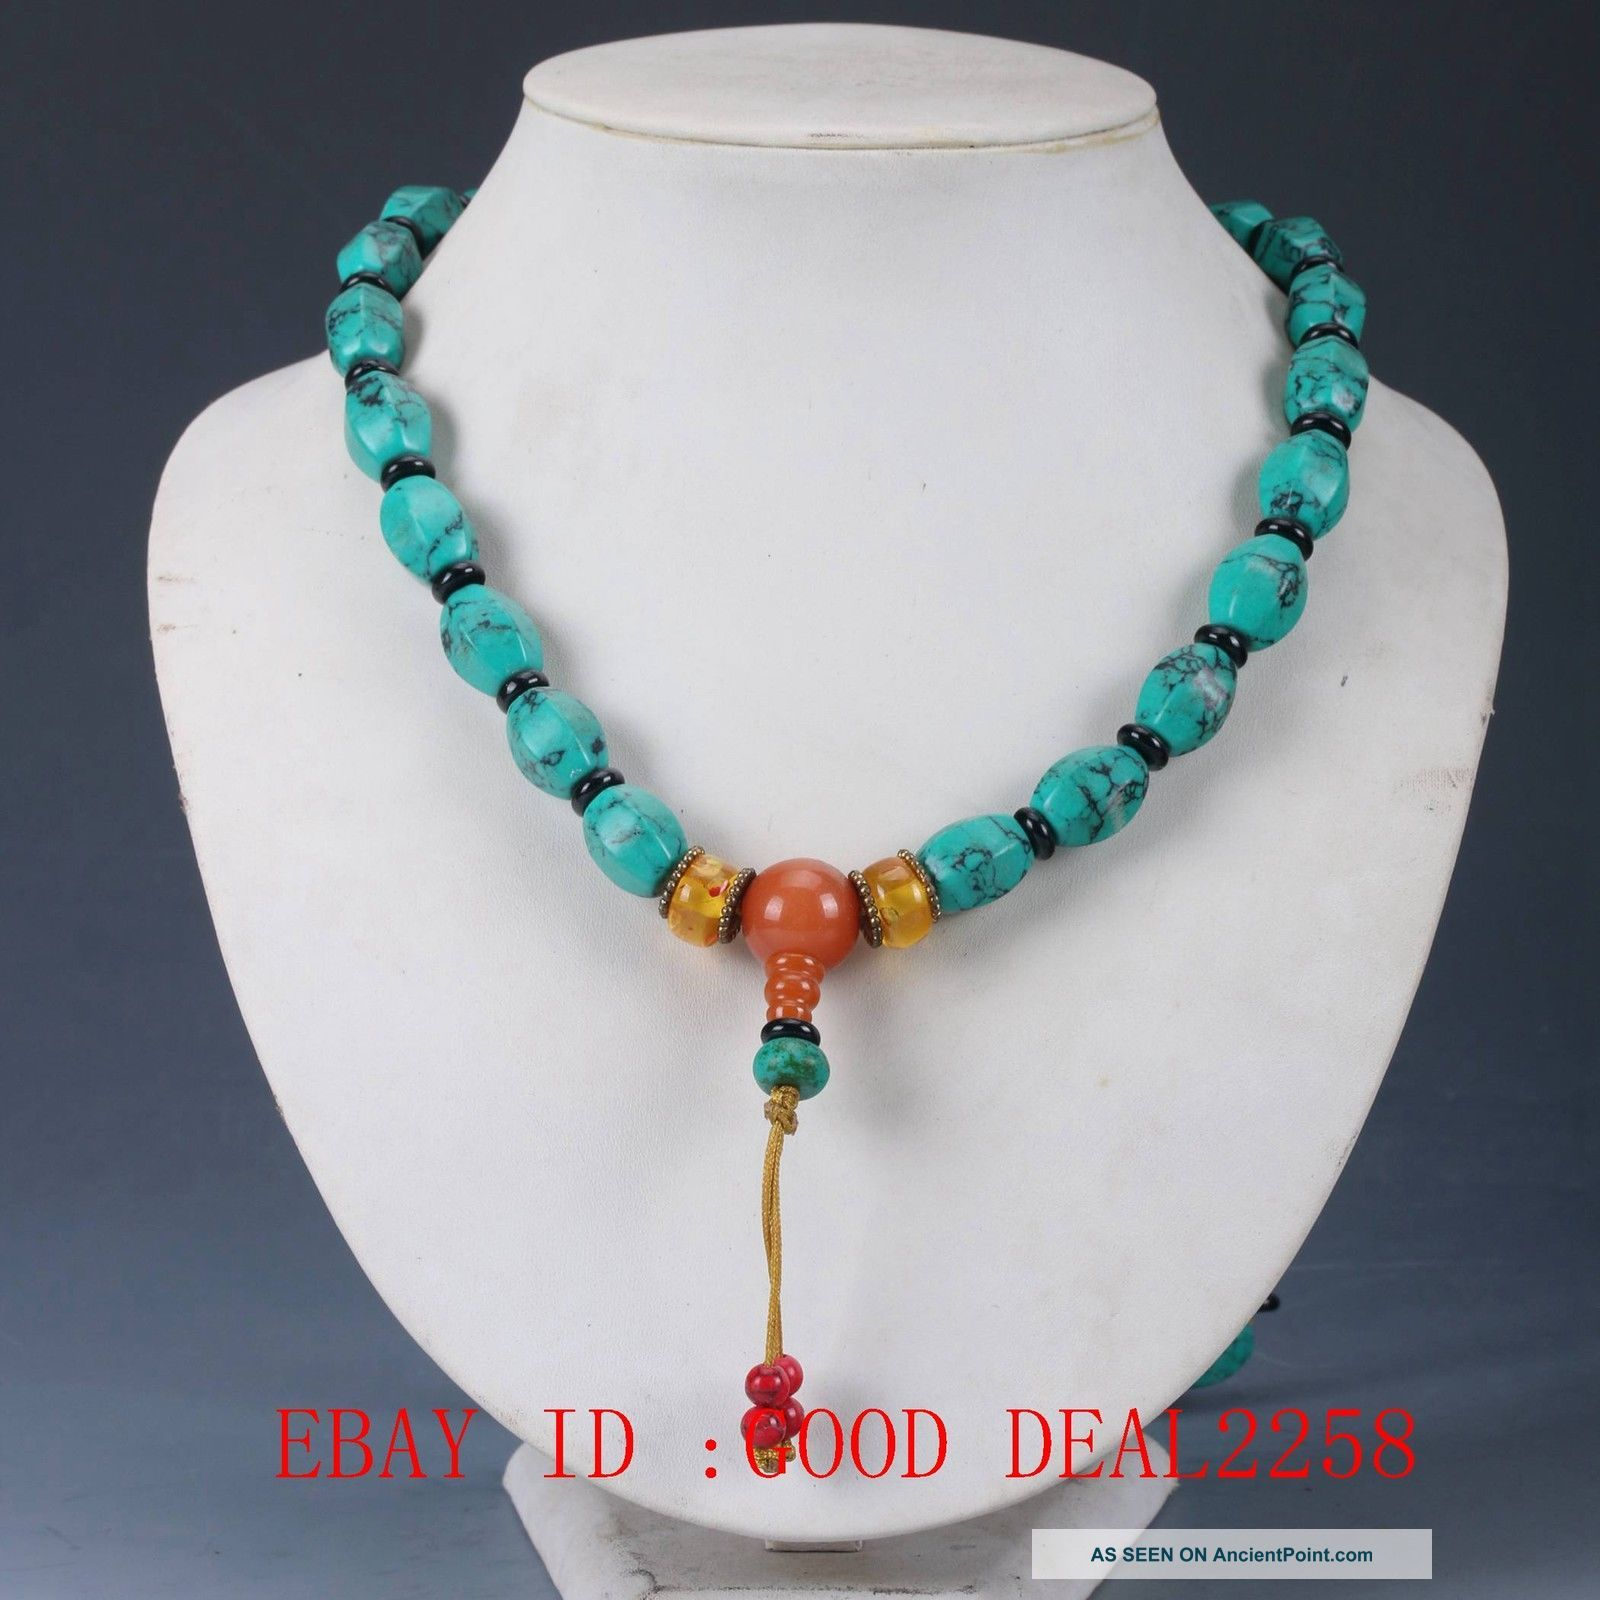 100 Natural Turquoise & Beeswax Handwork Decoration Necklaces Xl015 Necklaces & Pendants photo